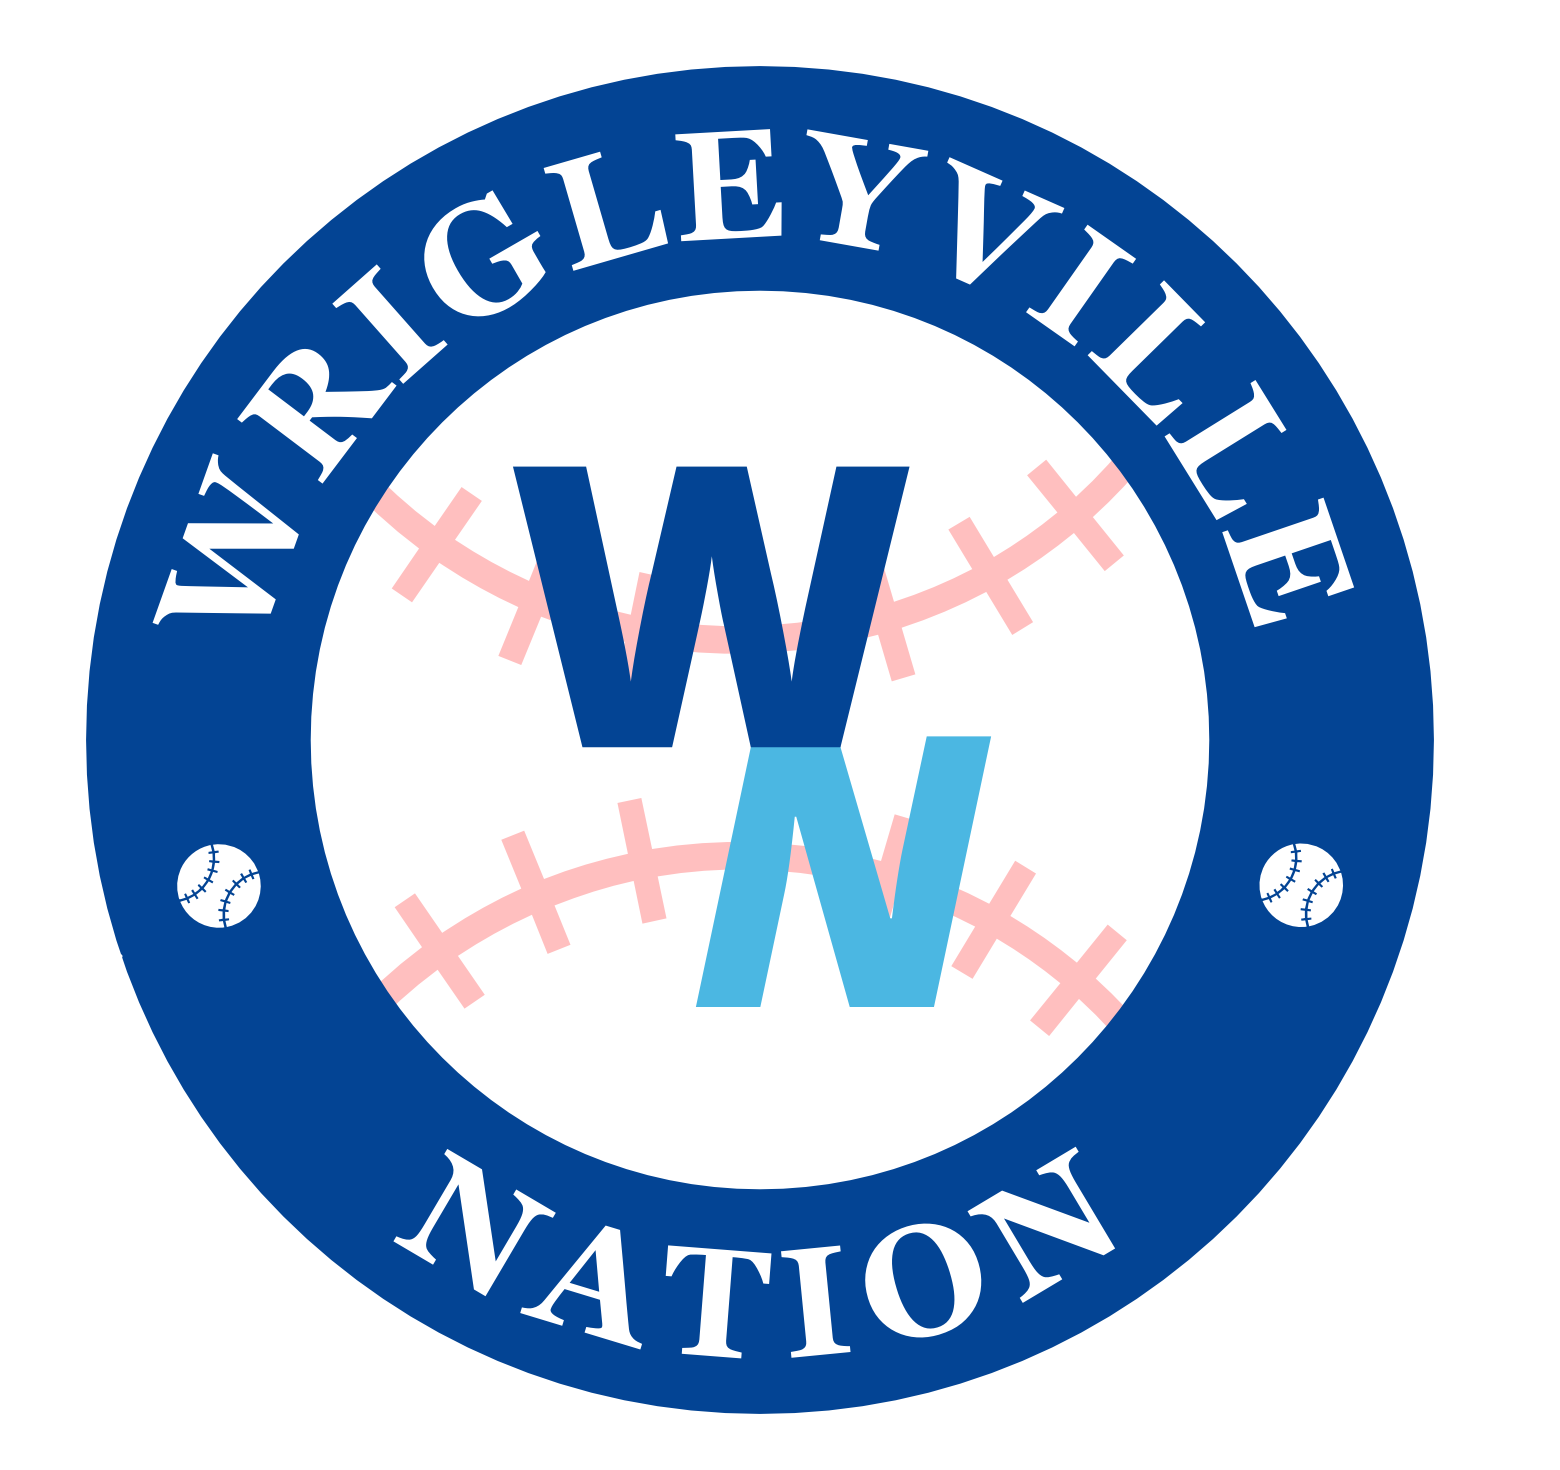 Wrigleyville Nation Ep 221 - Guest: Corey Fineran, Owners Proposal, Zobrist Memories, Games, & More show art